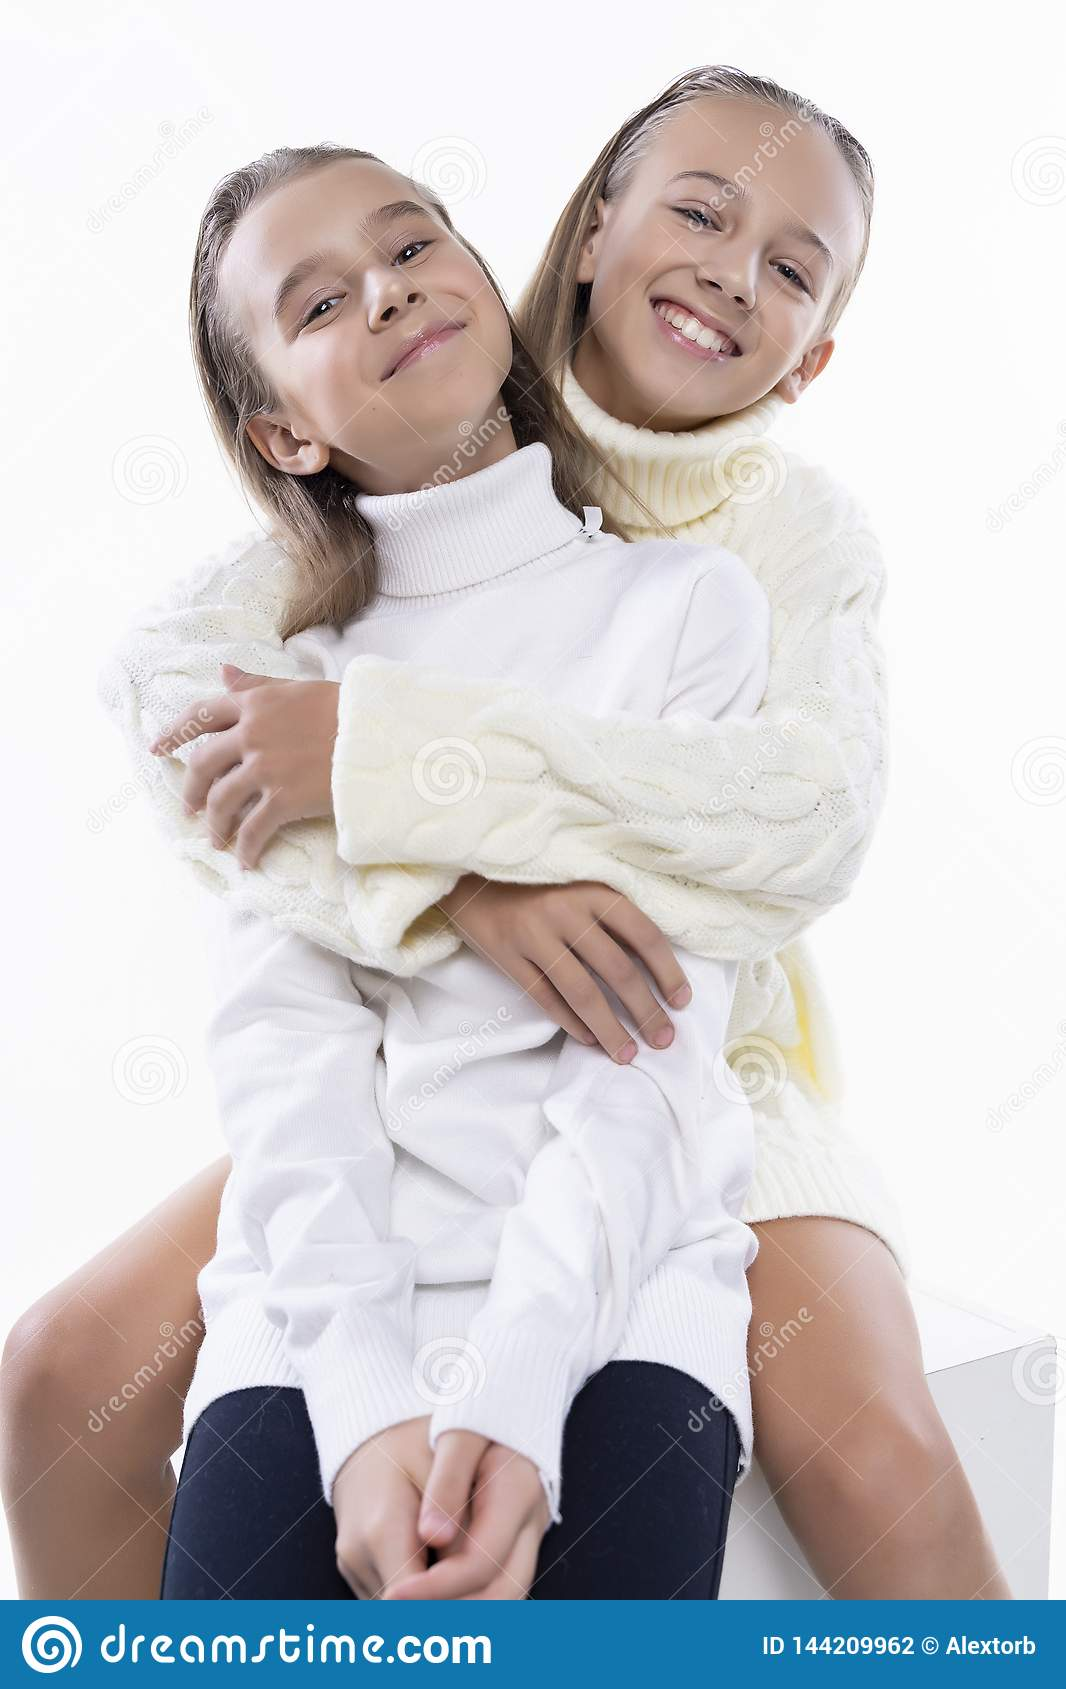 Two cute teenage girlfriends schoolgirls wearing white turtleneck sweaters, smiling sit, hugging each other in a friendly way.